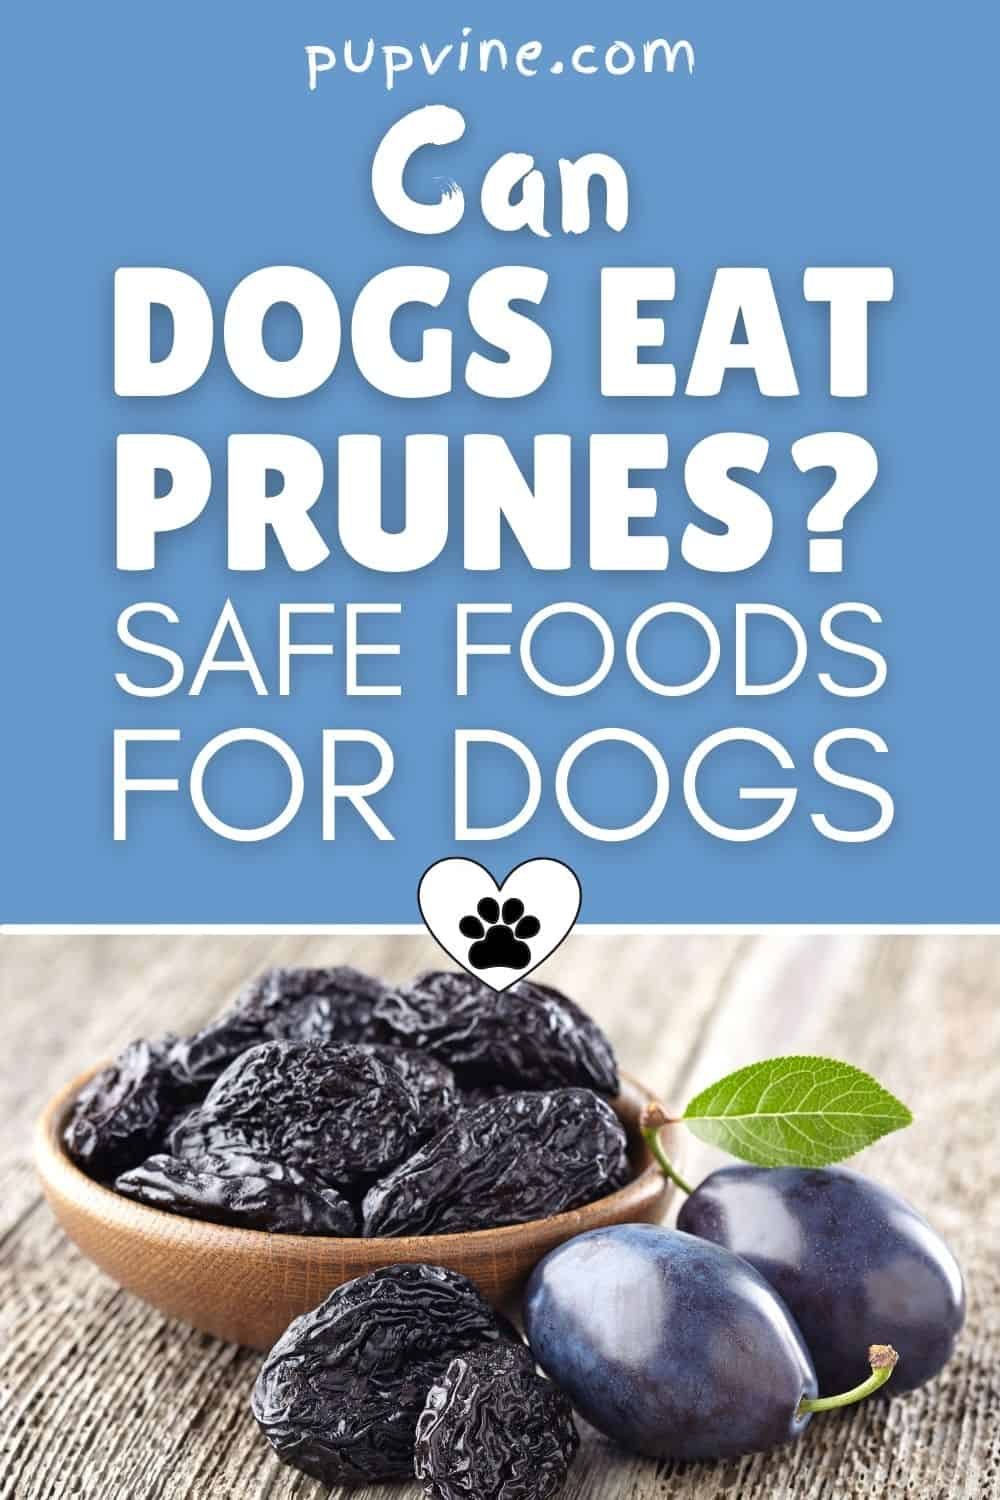 Can Dogs Eat Prunes? Safe Foods For Dogs